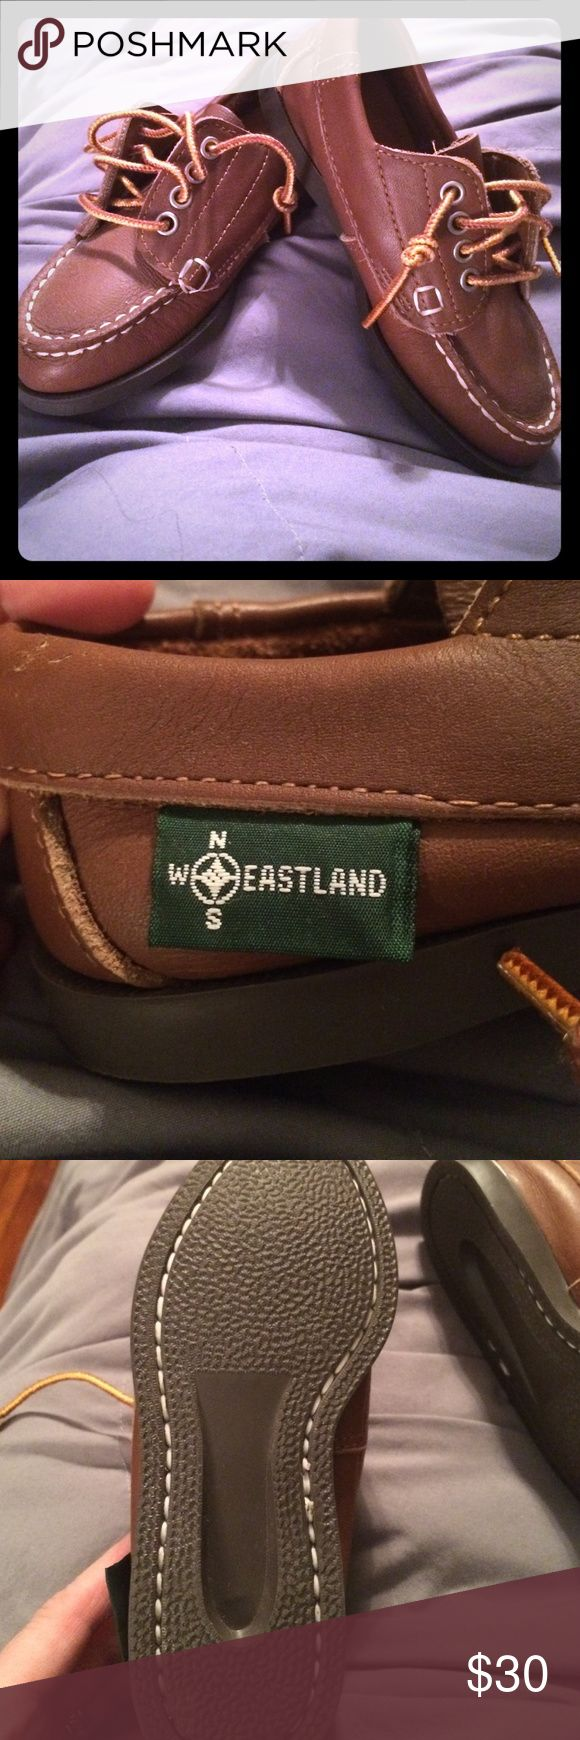 EASTLAND CHILDS 10.5  unisex Never worn outside. Tried on and never worn. Perfect sole, footbed and laces. I tied them old school just like we wore them in the 80's. These are CLASSIC EASTLAND  shoes. Quality and lifetime guarantee! Eastland Shoes